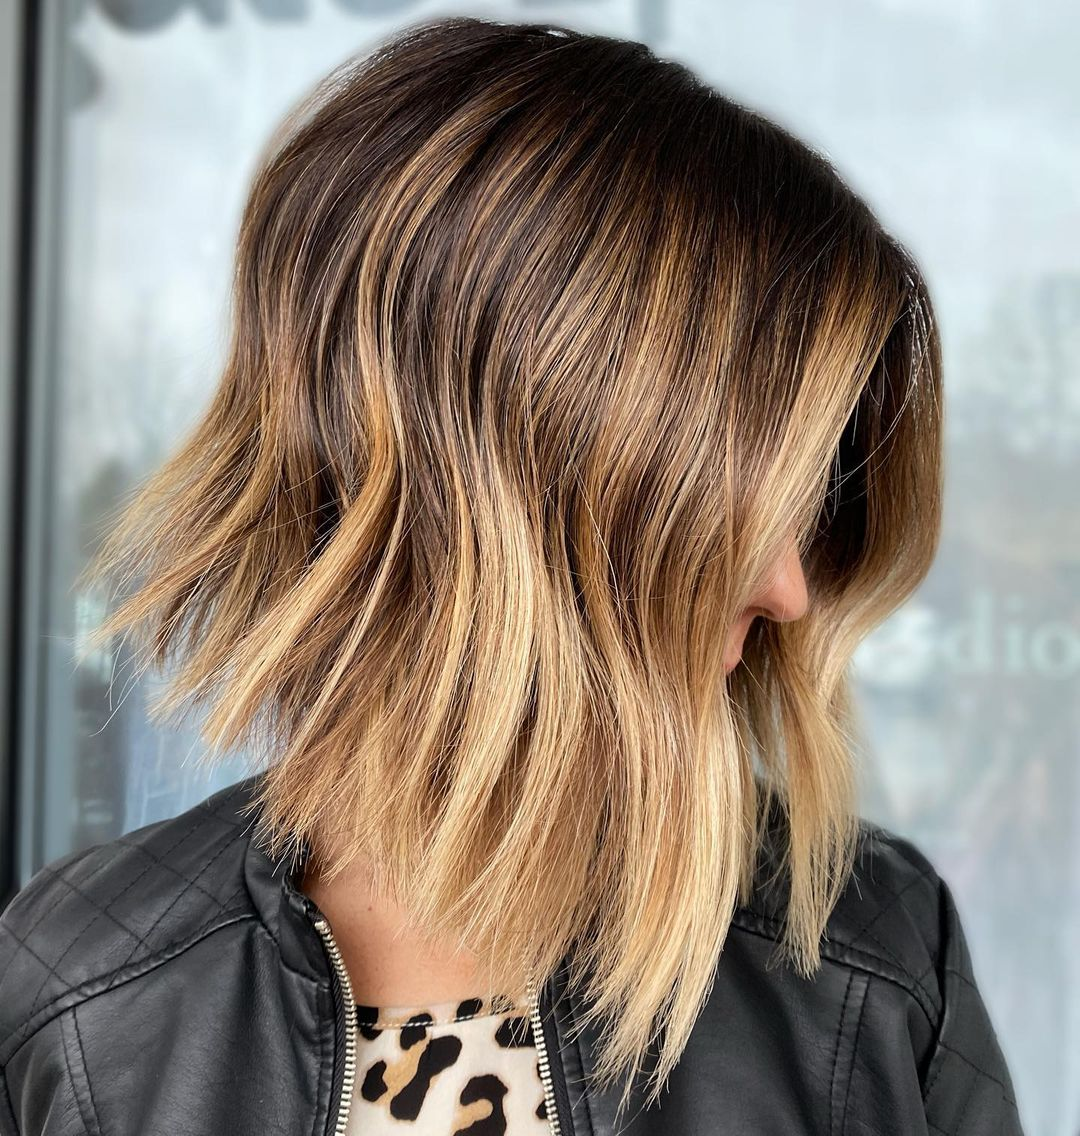 The 15 Hottest Haircuts for December 2021